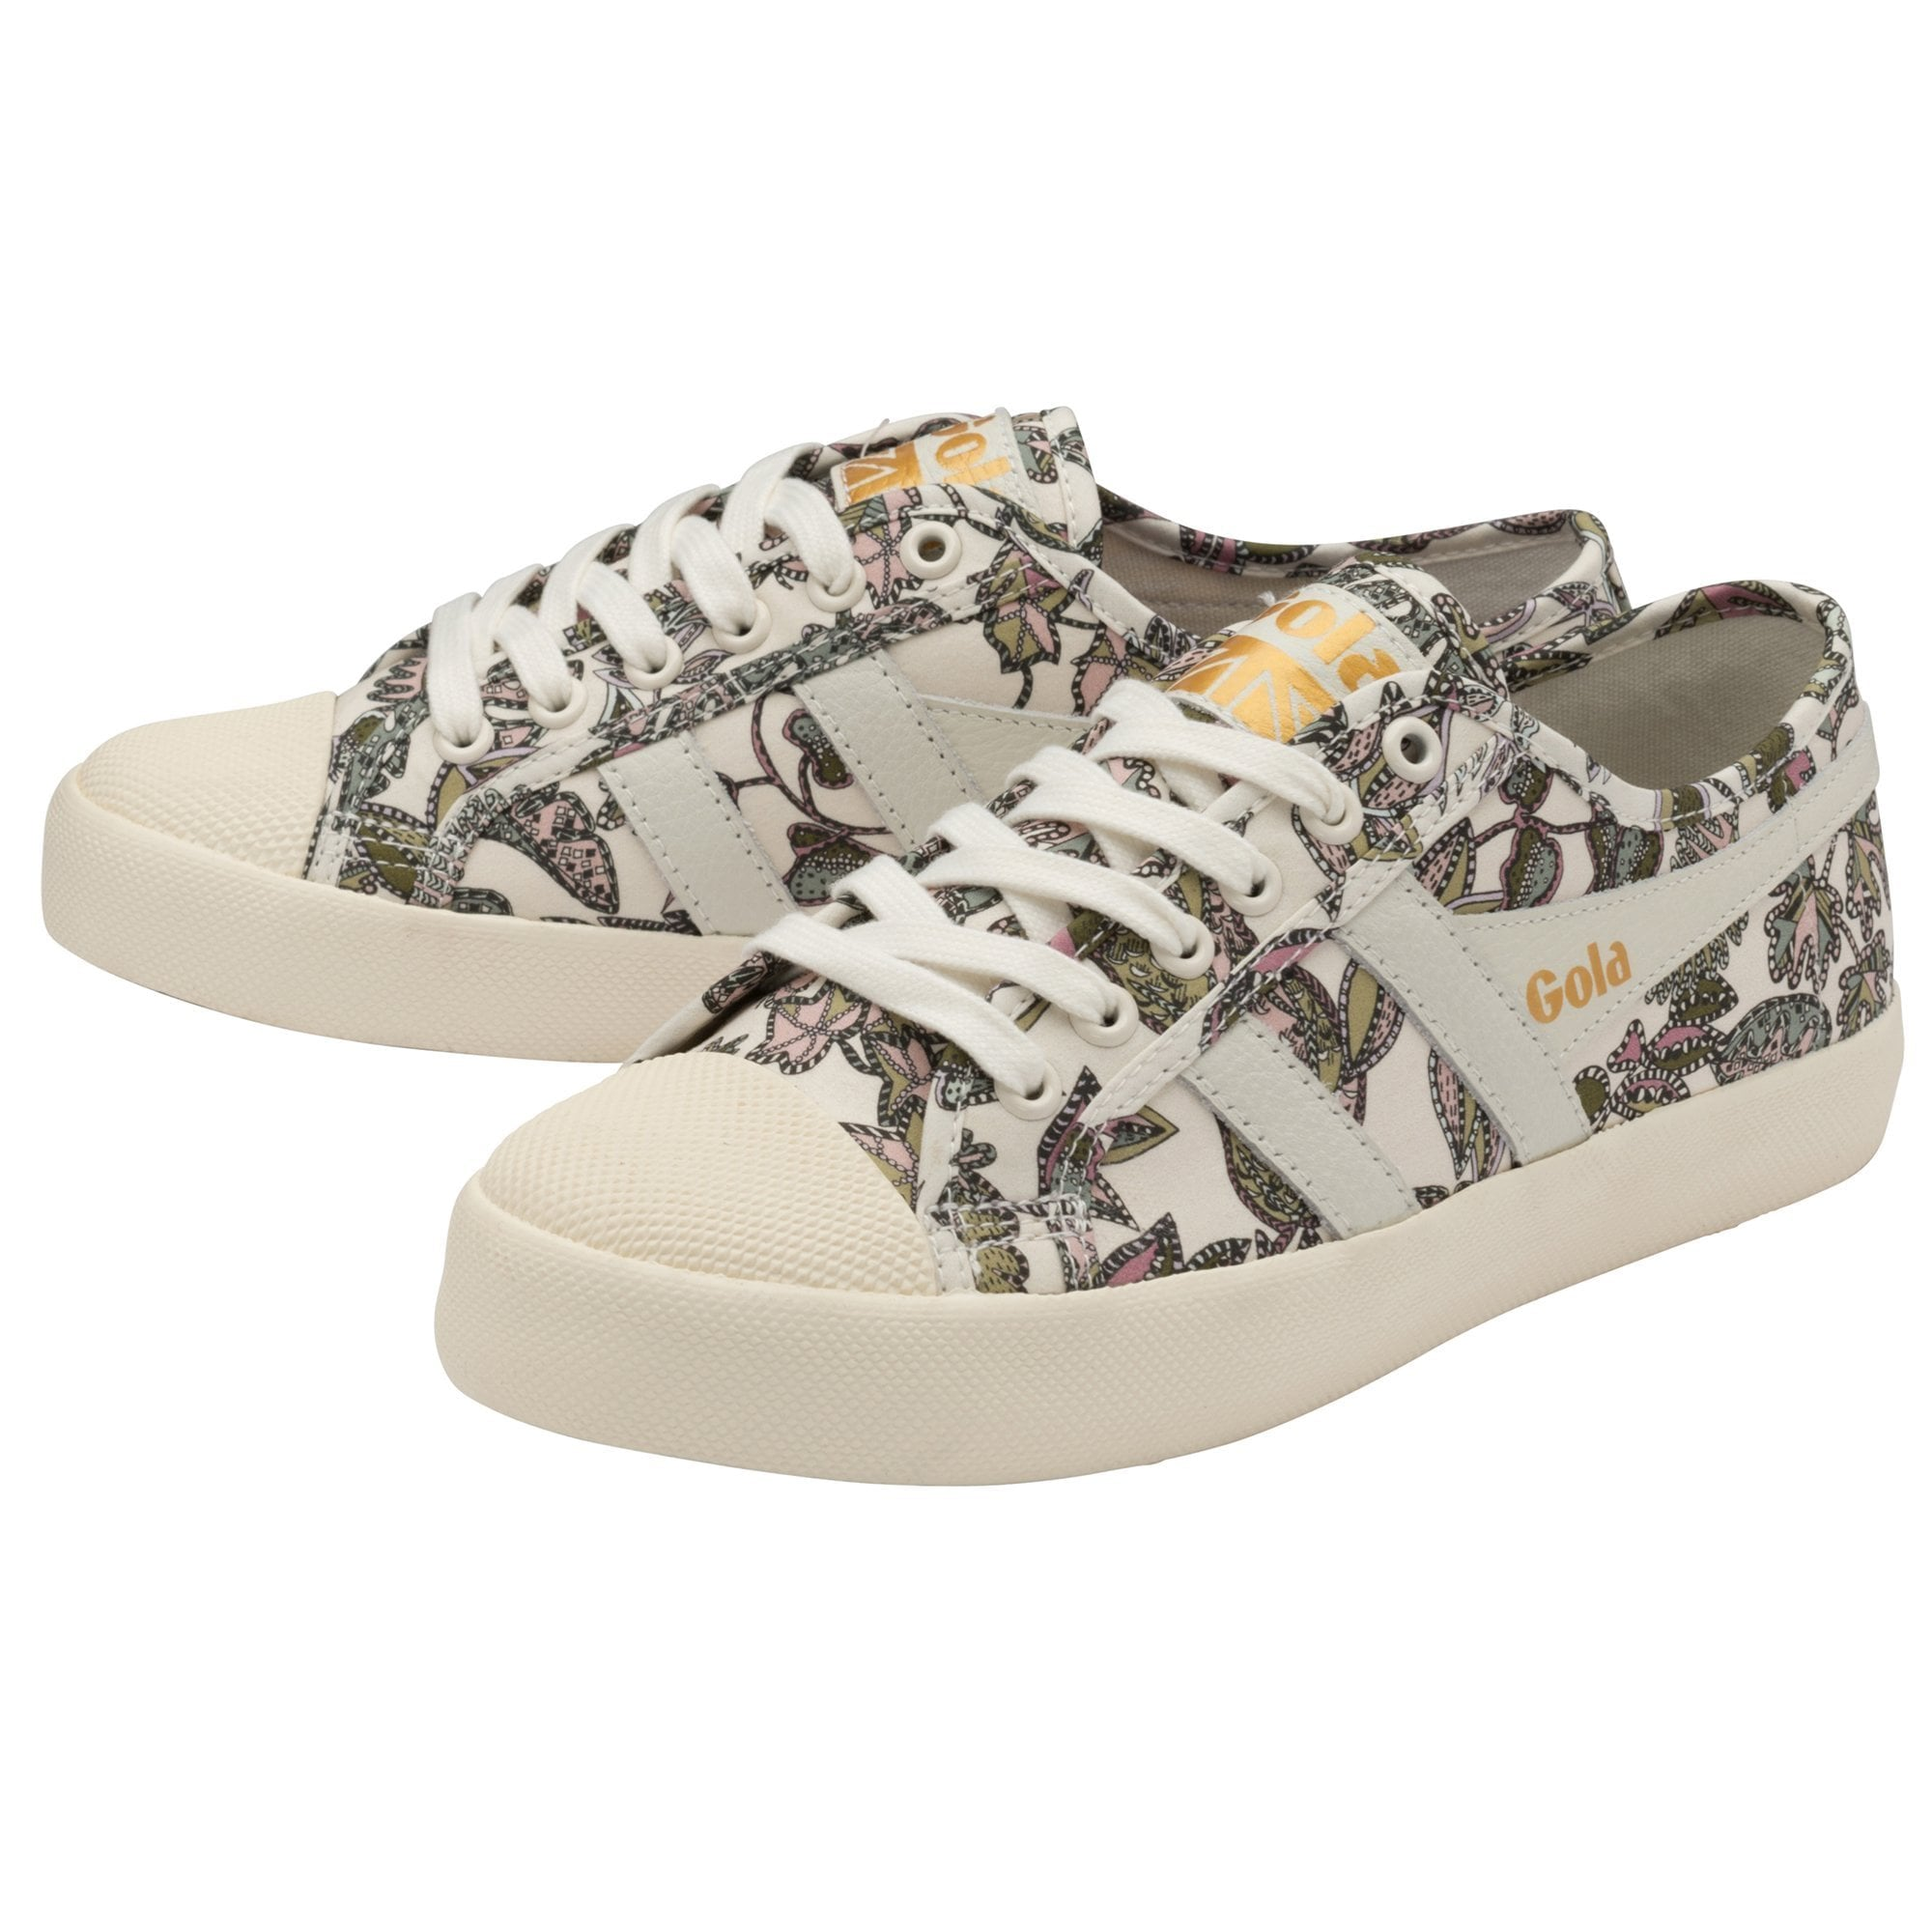 Women's Coaster LBTY PH Sneakers